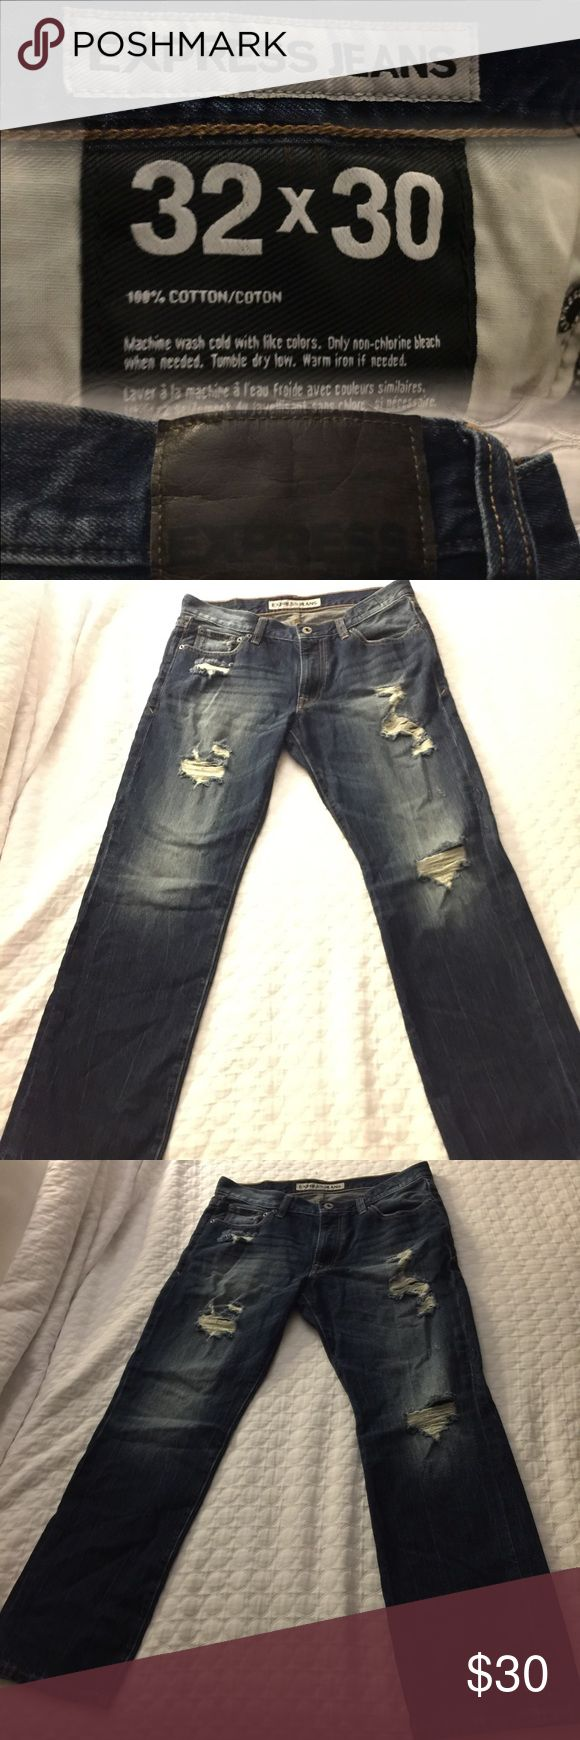 Express kingston 32 30 Kingston Classic Fit Straight Leg Express jeans distressed dark wash size 32 30 EUC never been washed. smoke free pet free home #express jeans #men express jeans# dark wash # distressed # boot cut straight fit mens jean (Shop and feel good about it 😁. Part of the money u spend goes to Purple Heart Foundation 💜)s Express Jeans Straight